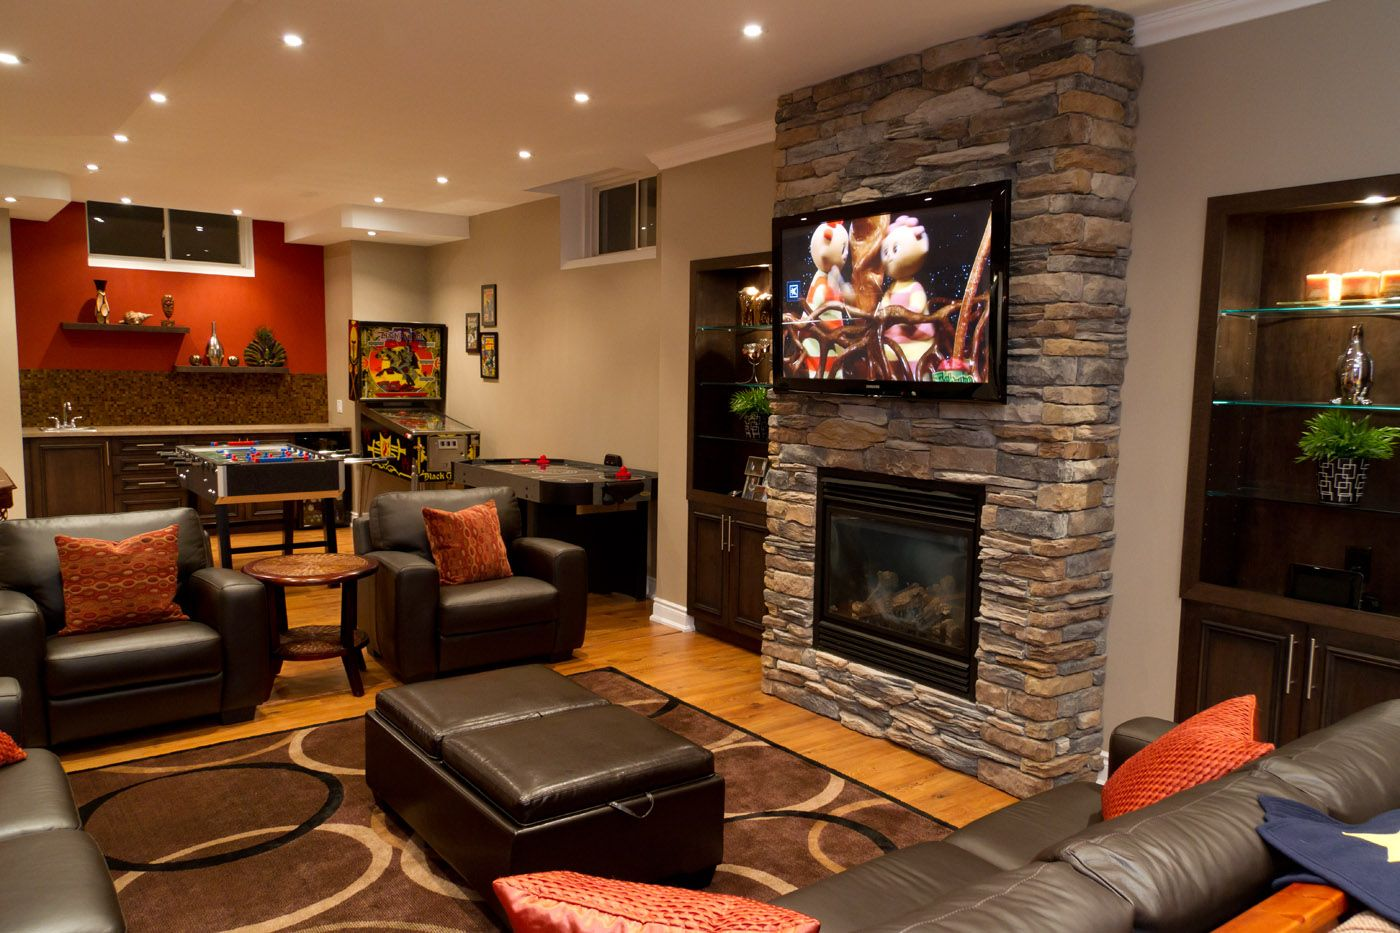 Basement Living Room Designs New Basement Playroom Ideas  Finished Basement Basement Renovations Design Ideas